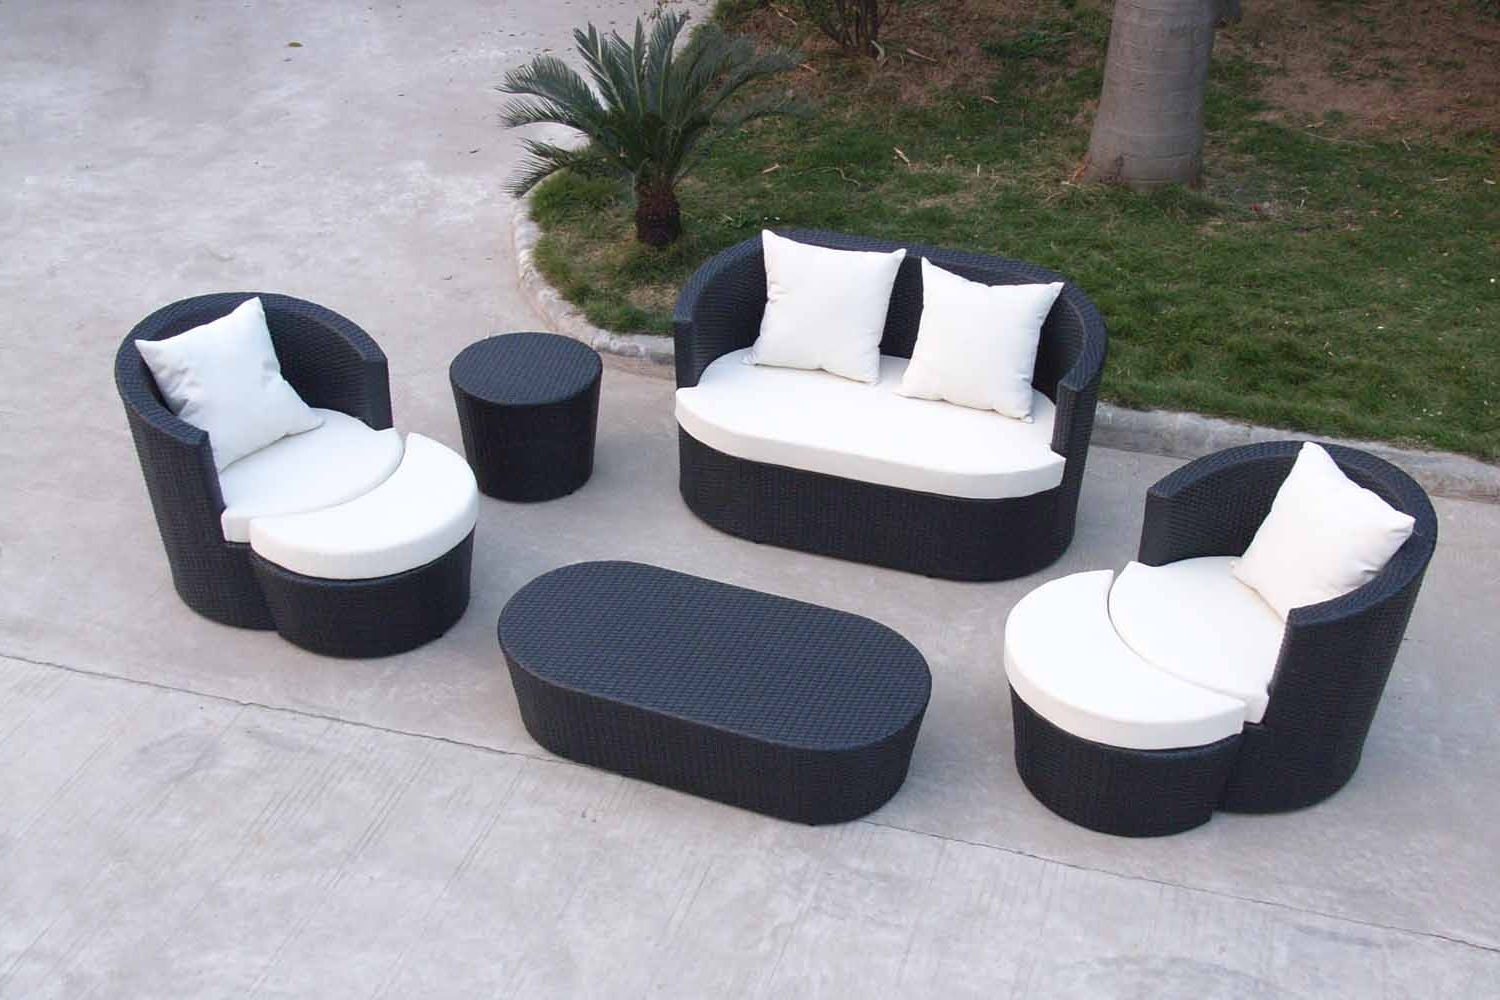 Outdoor Sofas And Chairs Pertaining To Well Liked Sofa Design Ideas: Outdoor Couches Patio Furniture Sofa Chair Sets (View 11 of 20)